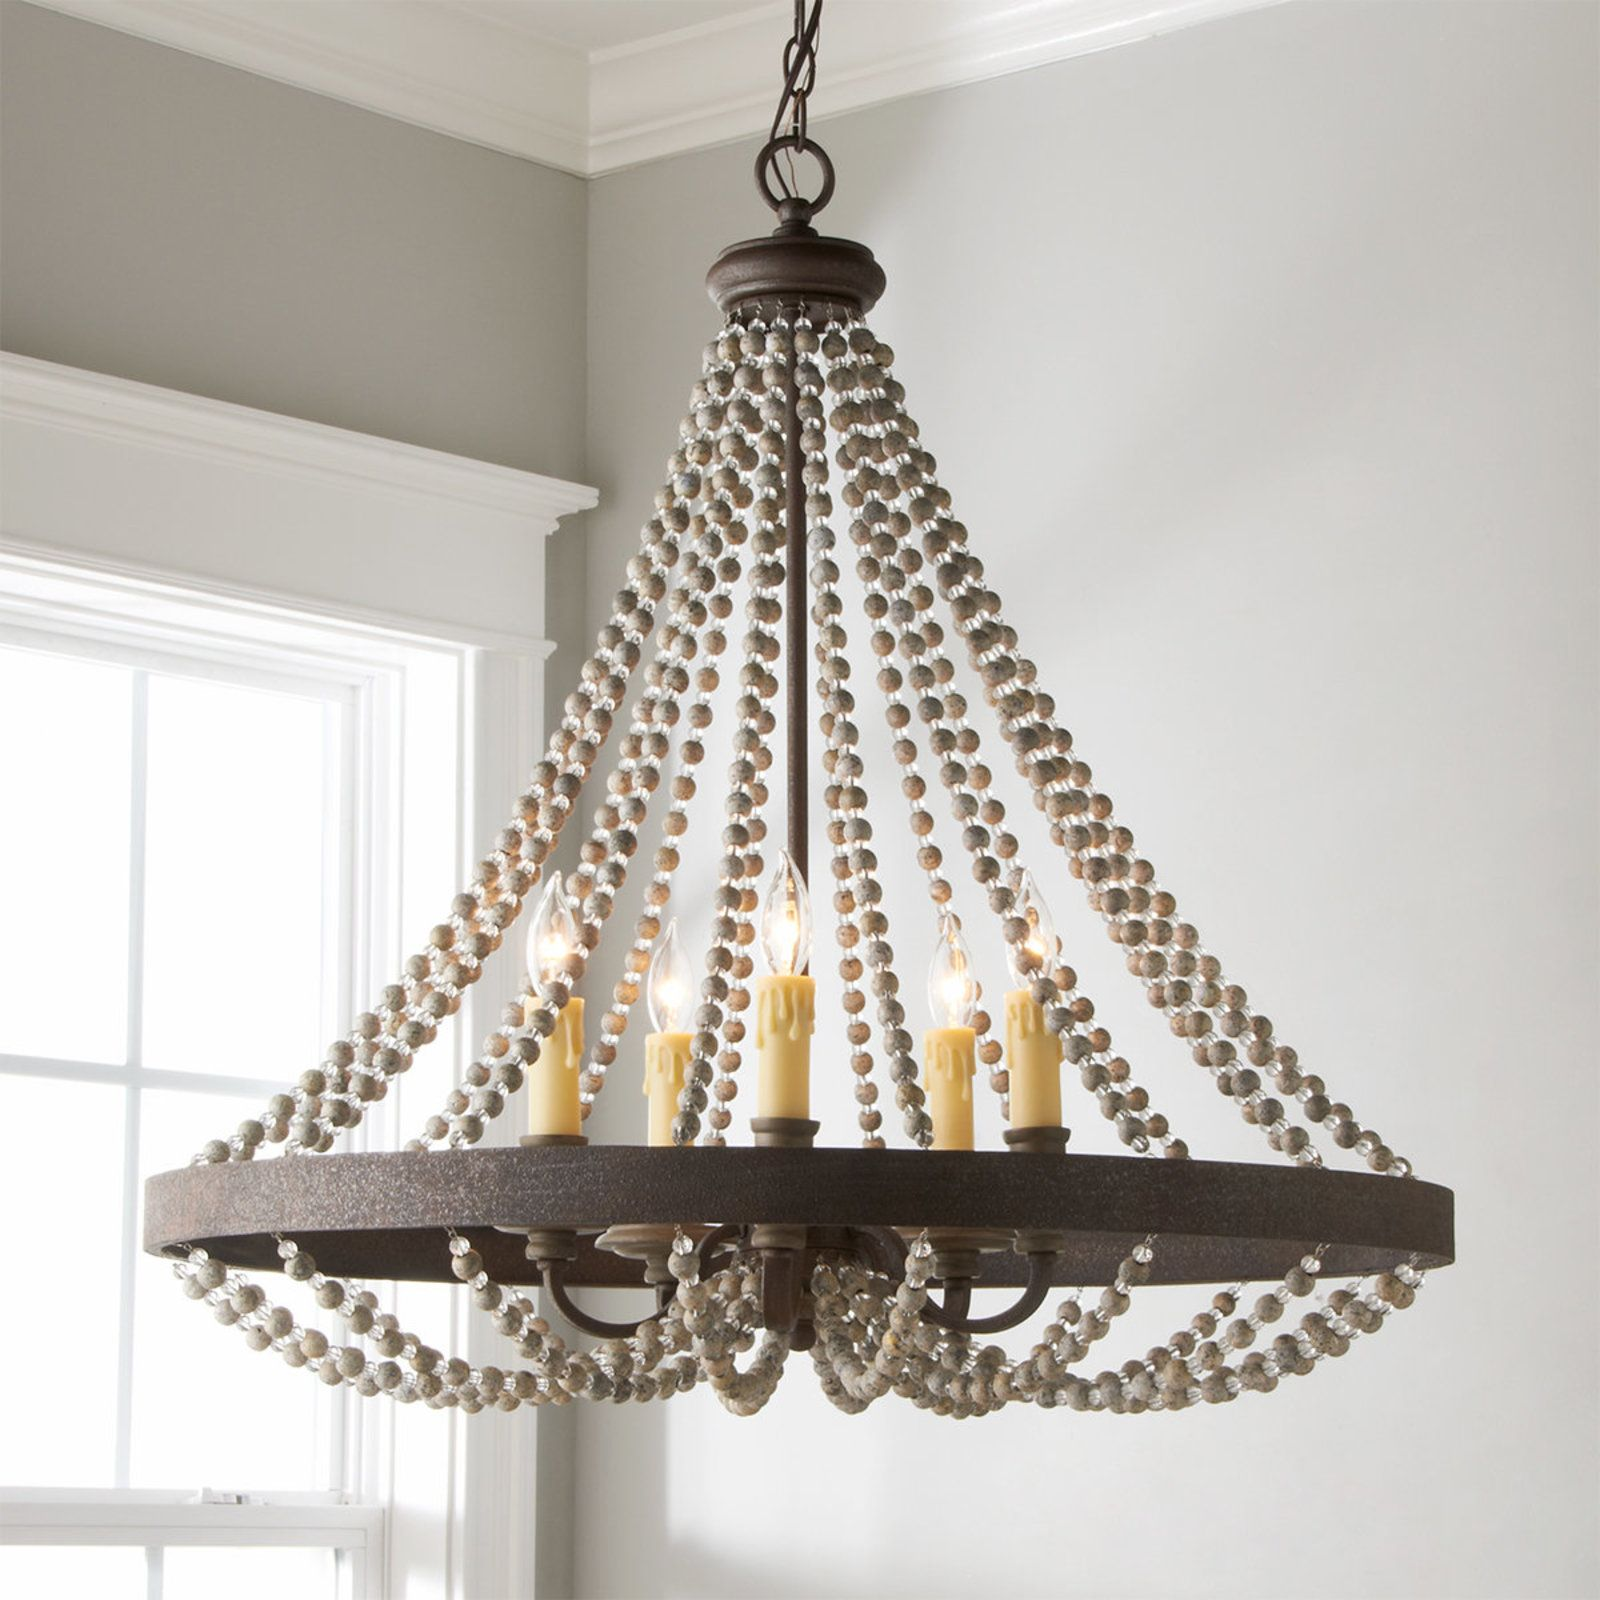 Rustic French Country Beaded Chandelier Rustic French Country